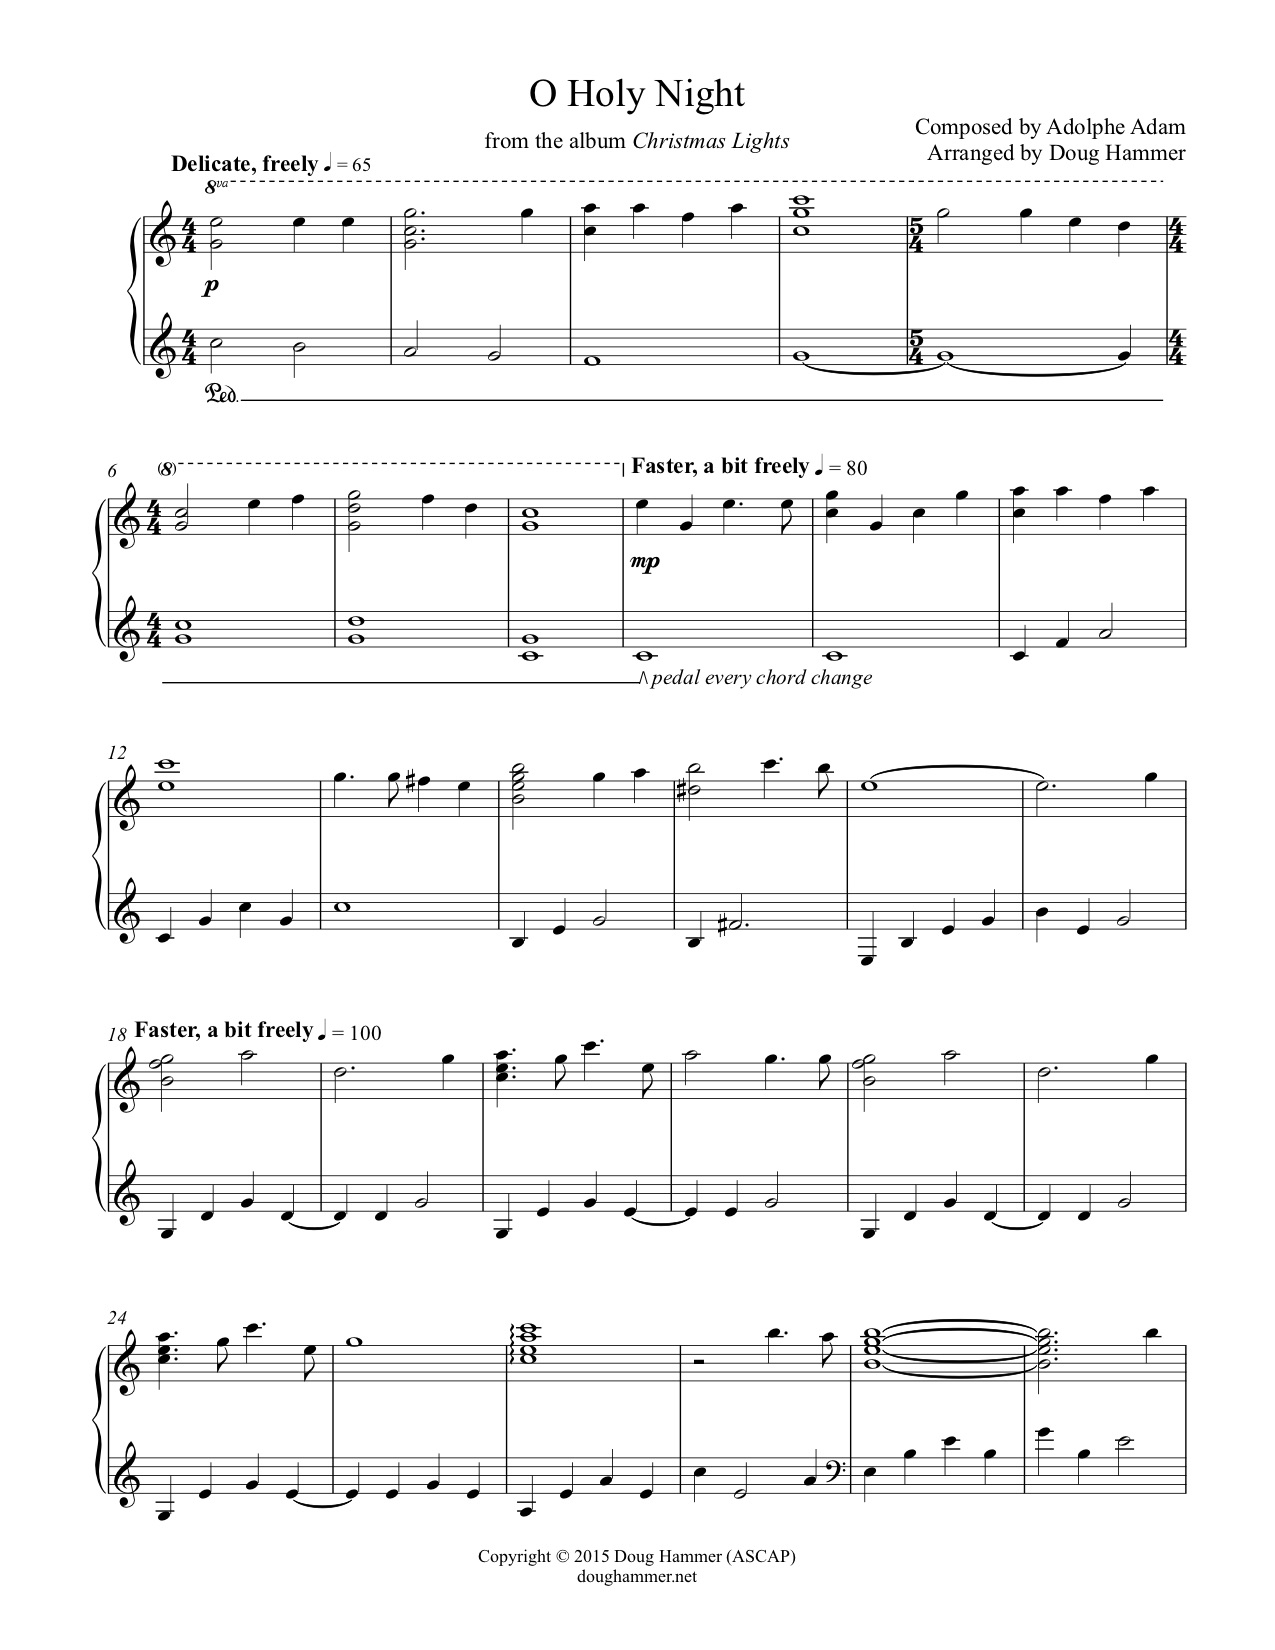 picture about My Heart Will Go on Piano Sheet Music Free Printable named Doug Hammers Shop Sheet Tunes Retail store